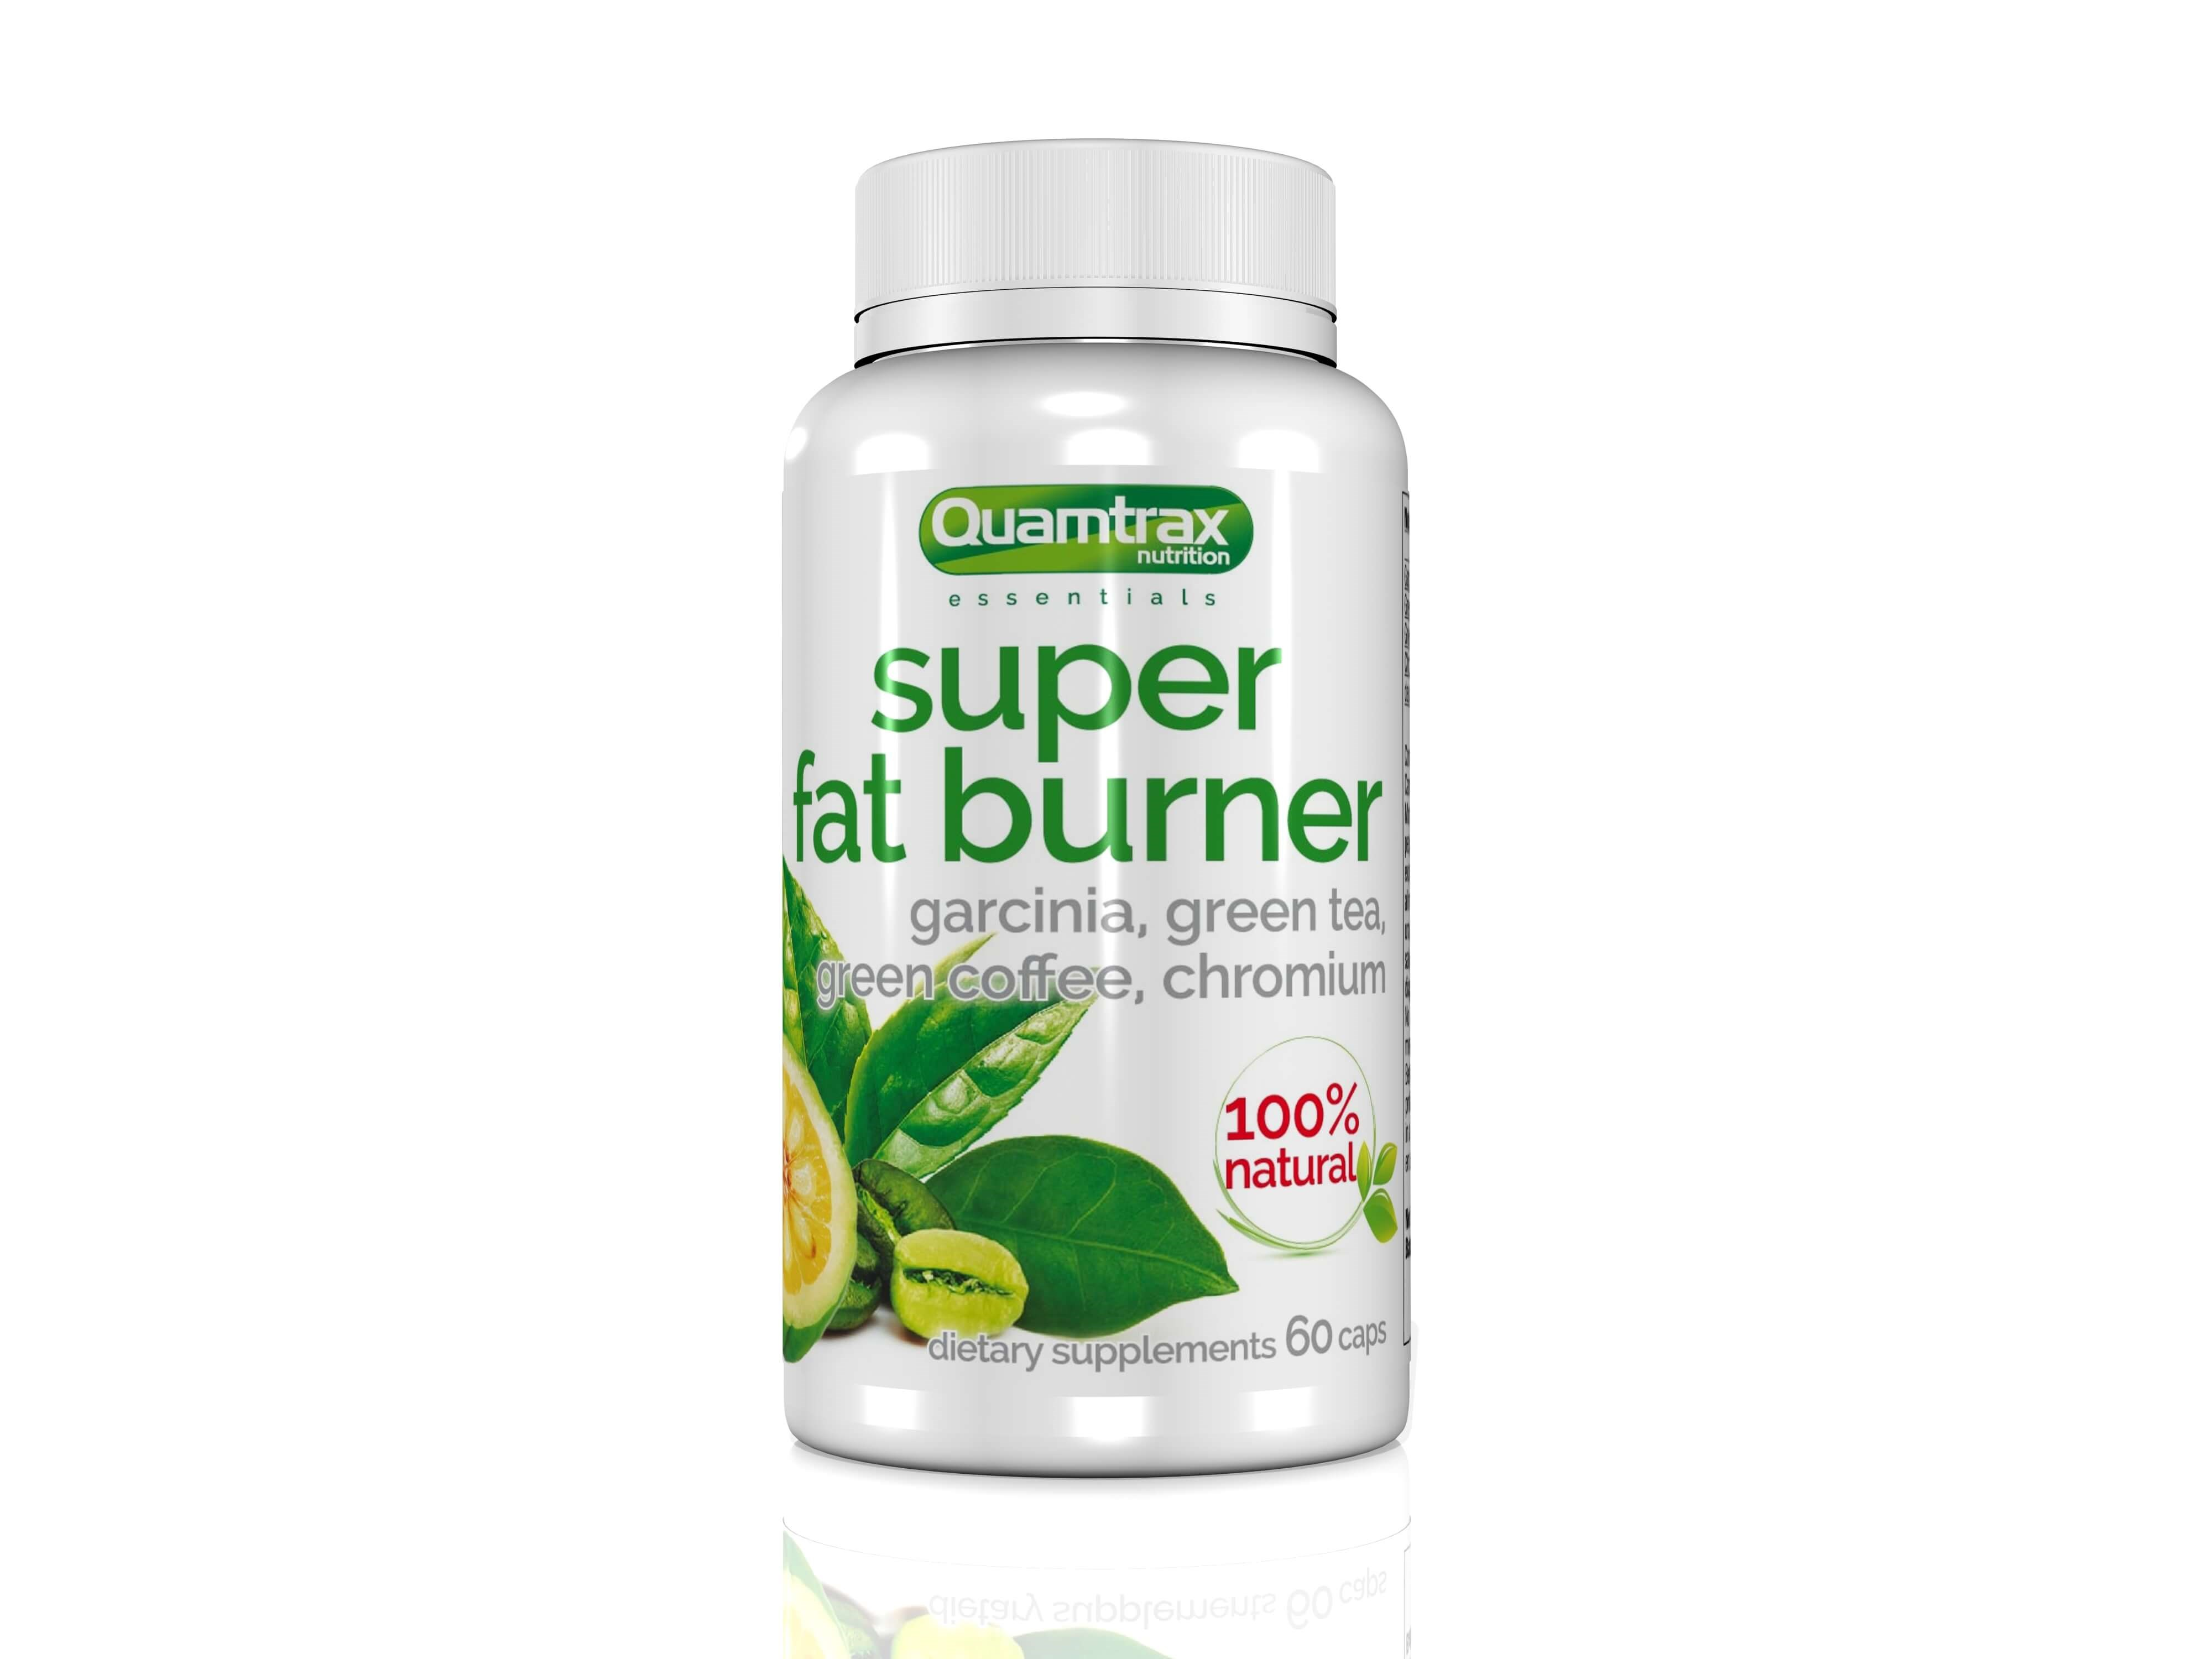 Quamtrax Essentials Super Fat burner 60 capsules